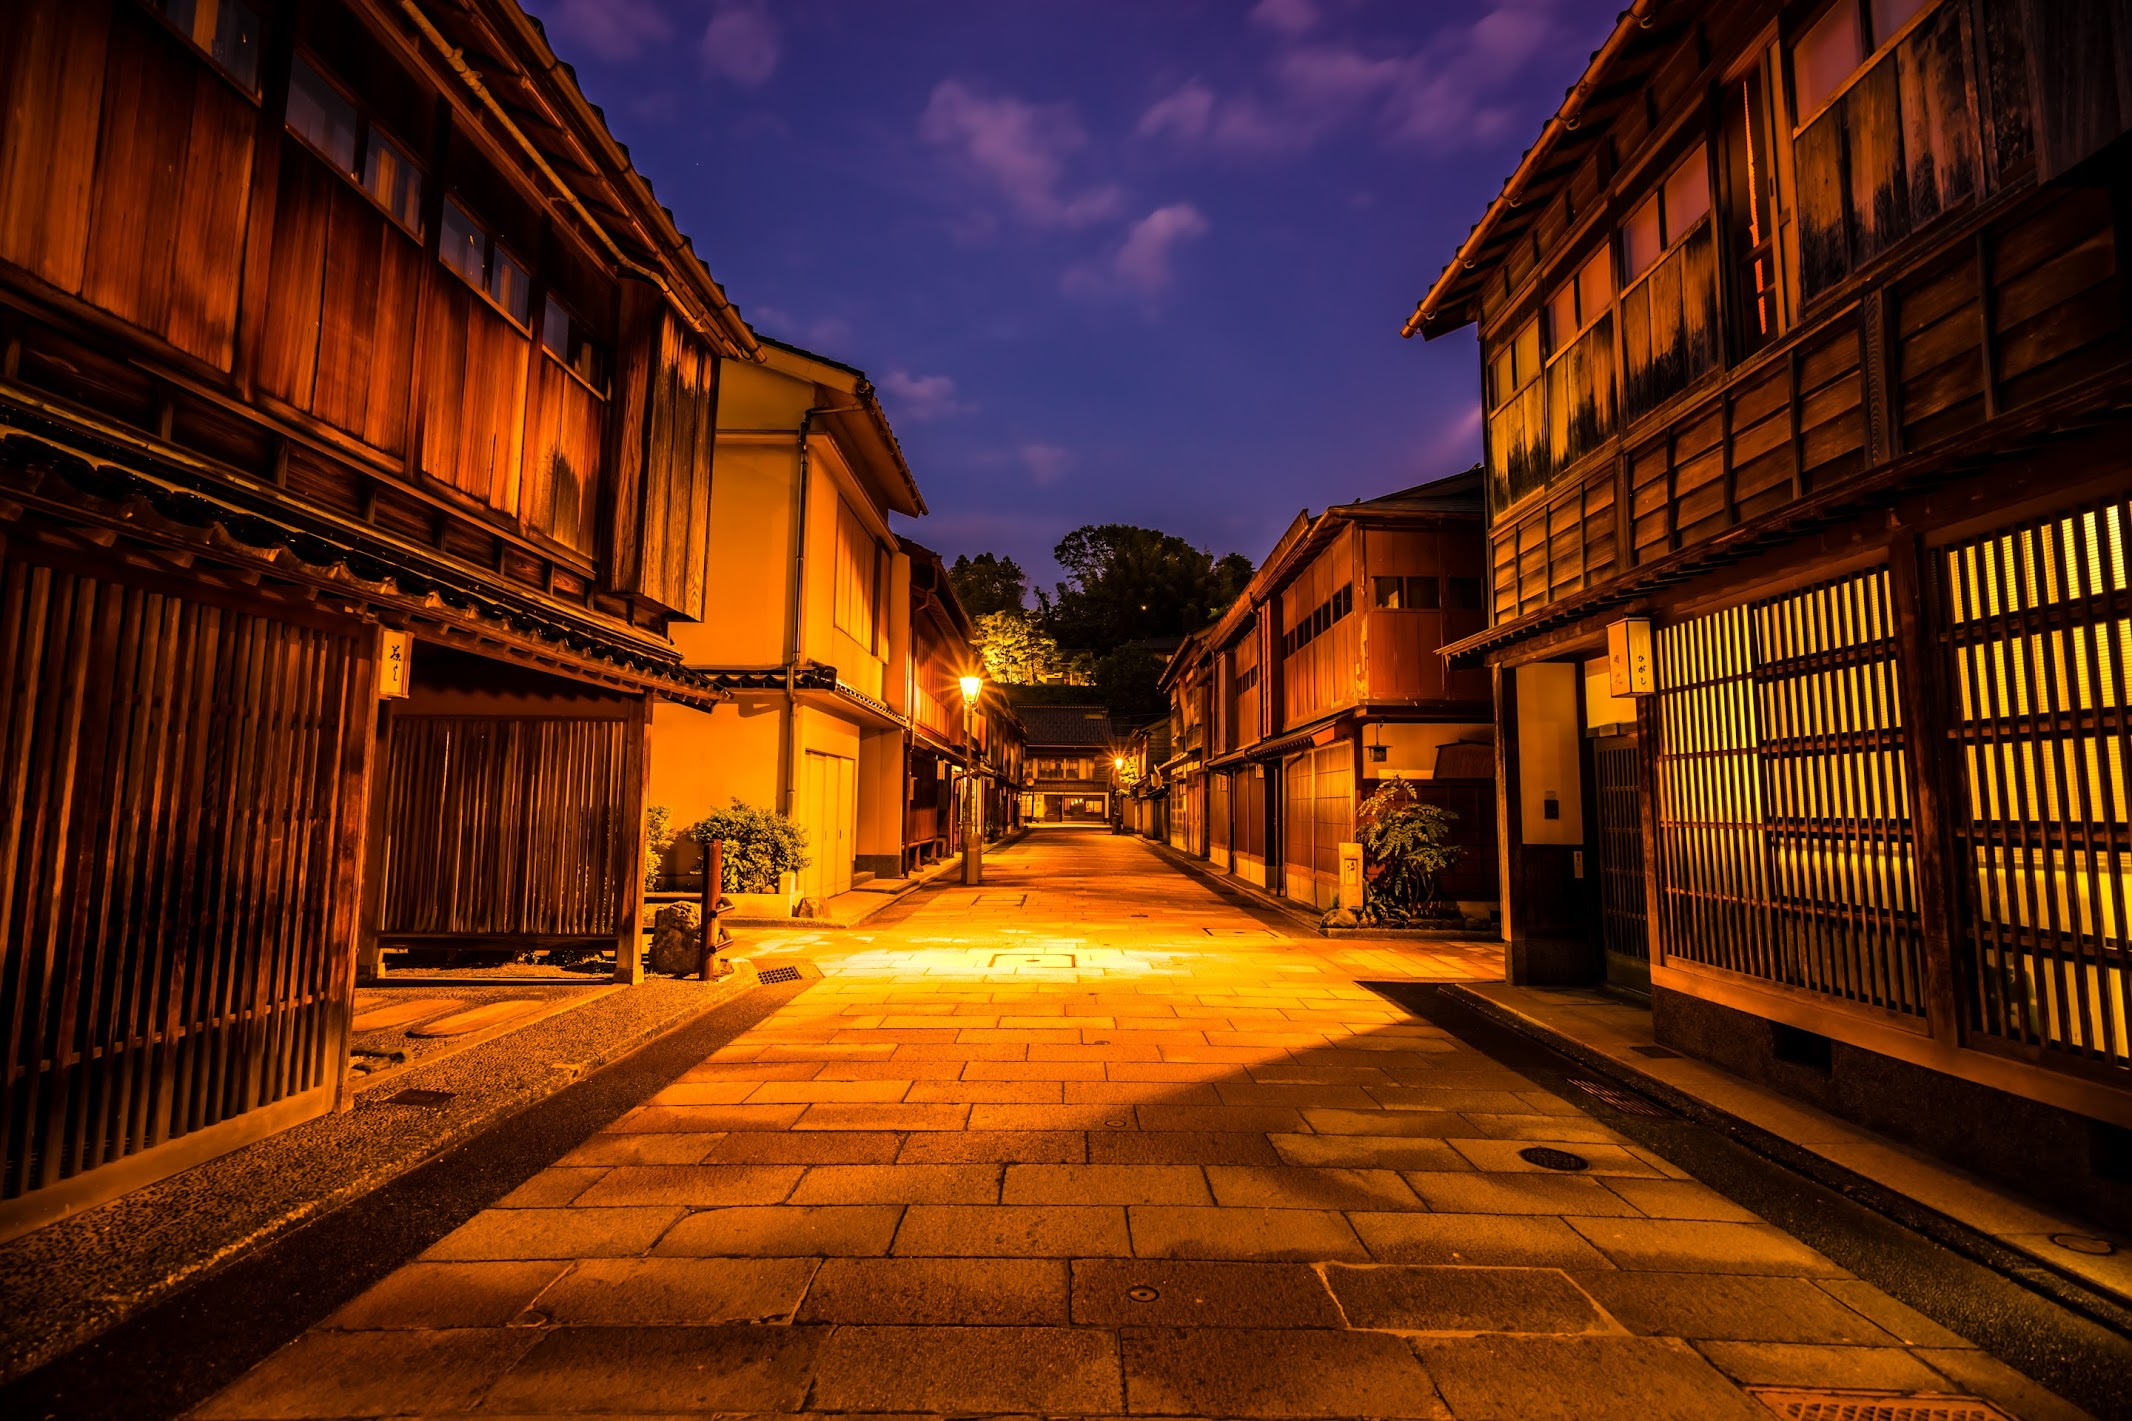 Kanazawa Higashi Chaya District Light-up1